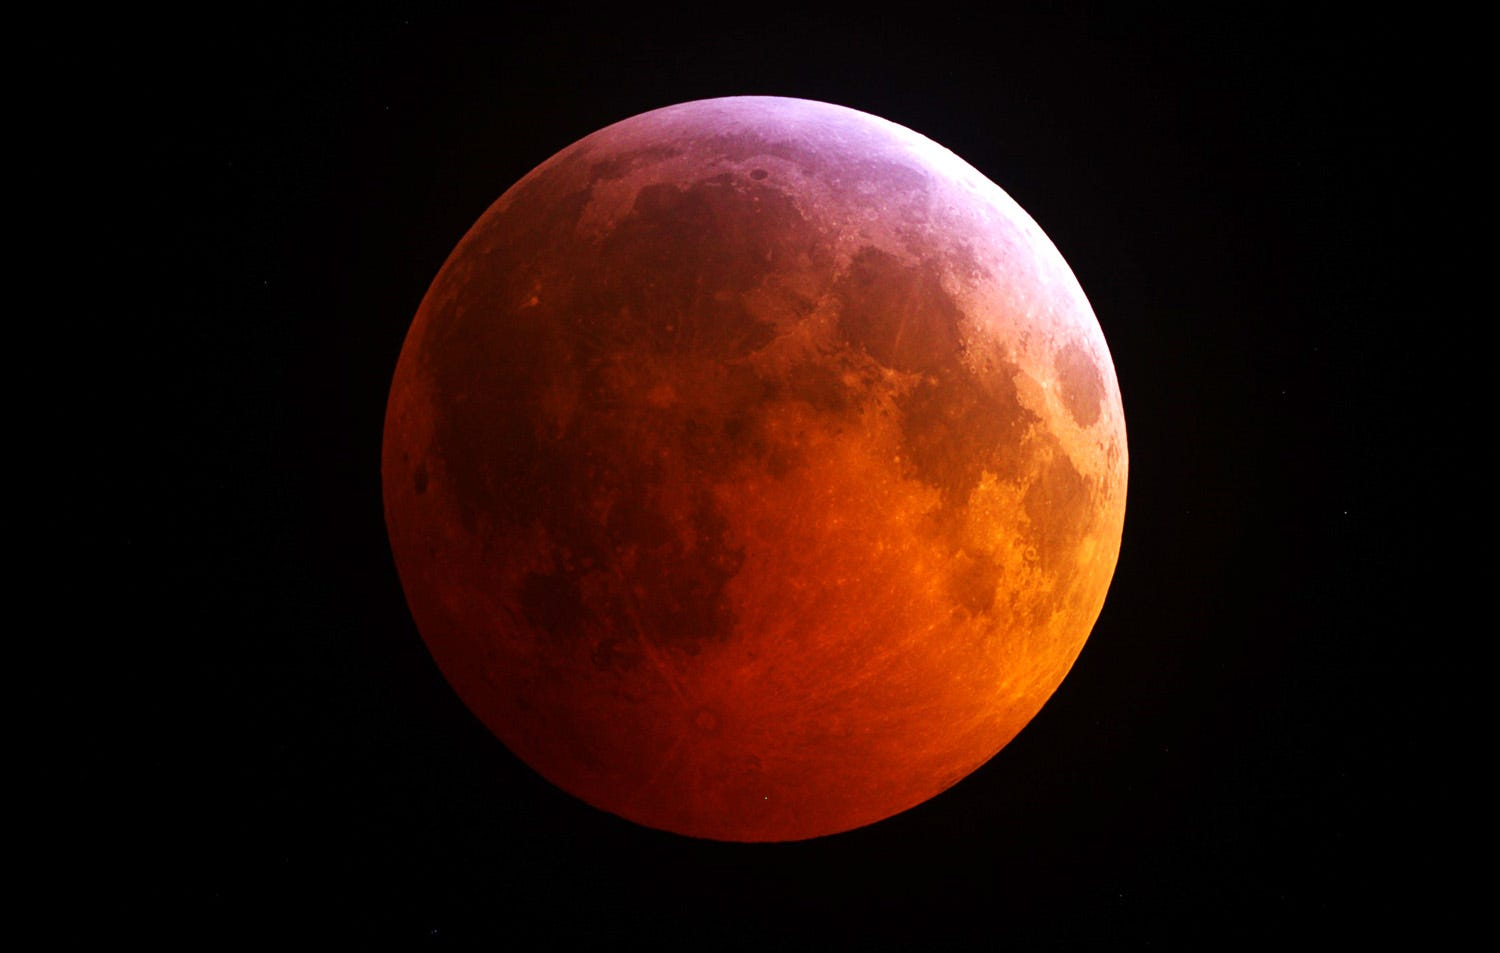 Total lunar eclipse on April 15, 2014 as seen from the Mount Lemmon SkyCenter near Tucson, Arizona.